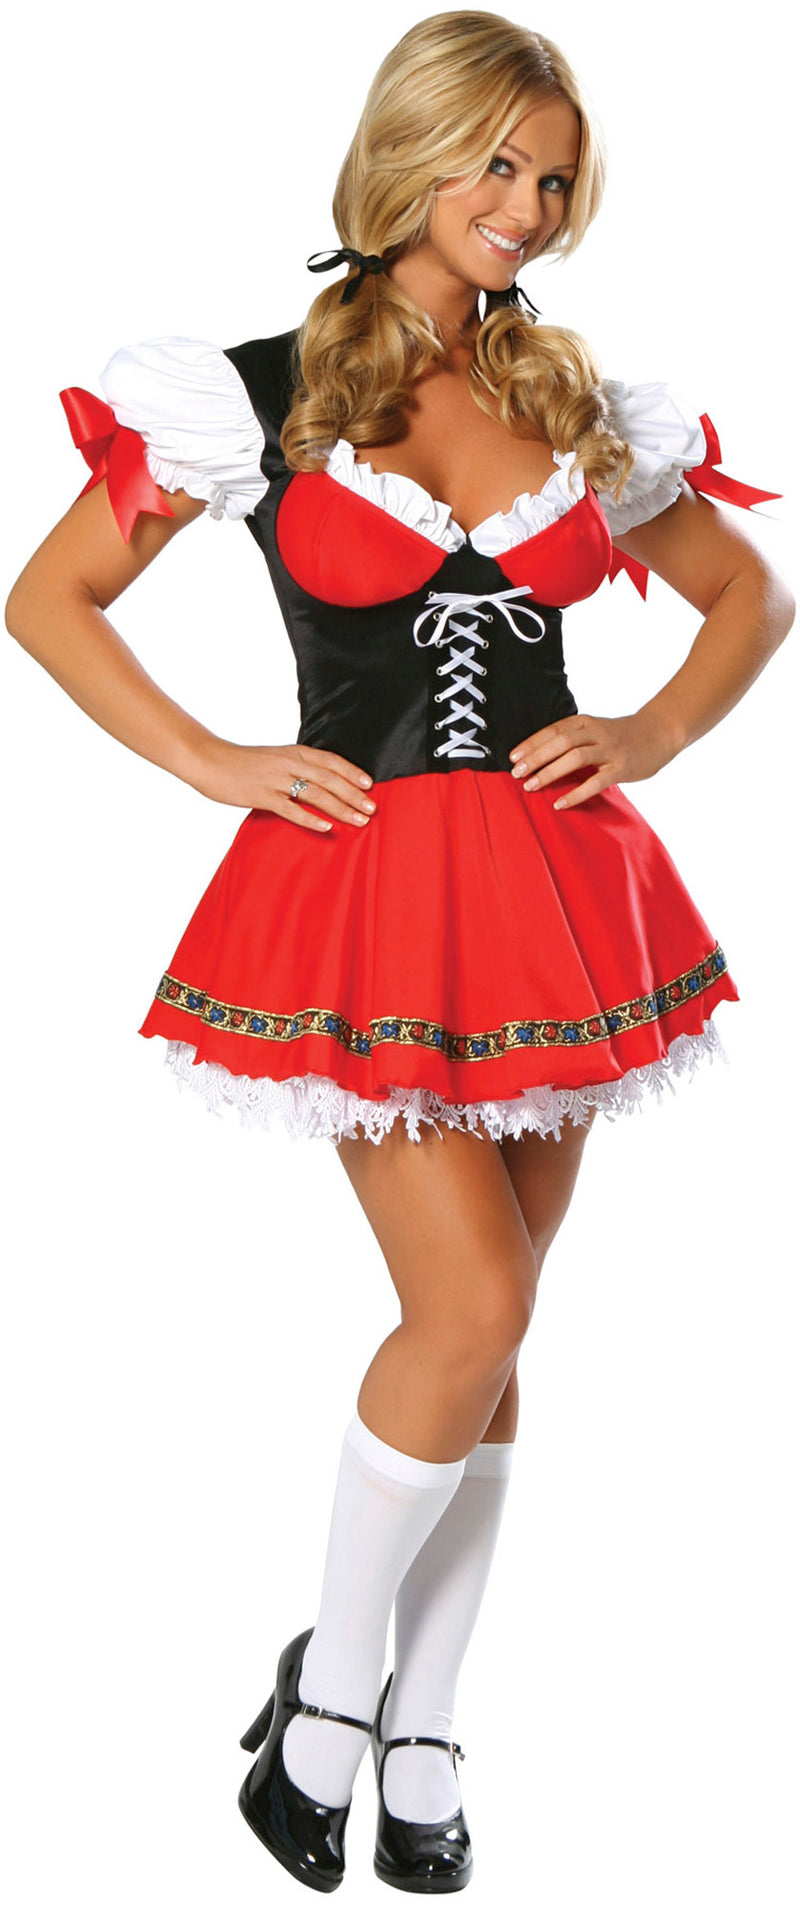 Hoffbrau Honey Beer Girl Costume RM1414